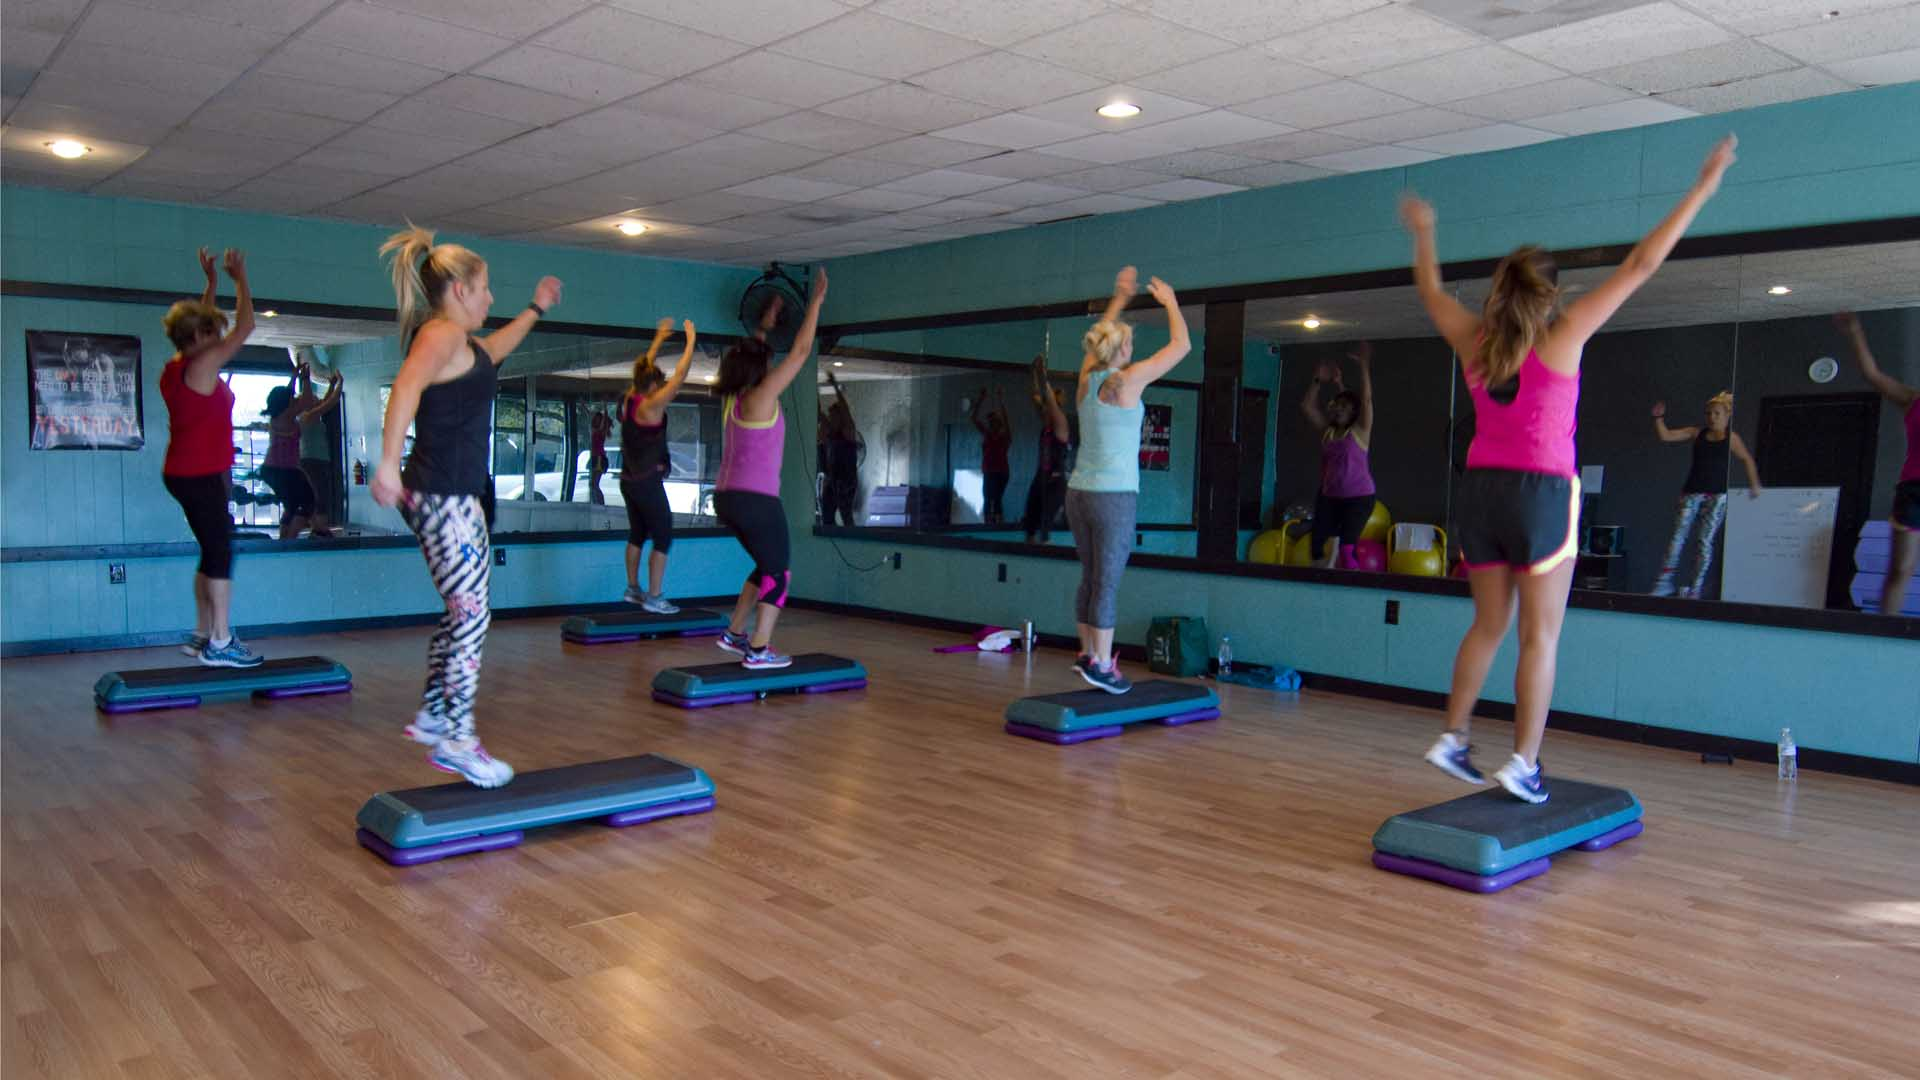 A group of women participating in Kathy's group fitness class, jumping up off their aerobics steps and raising their hands in the air.